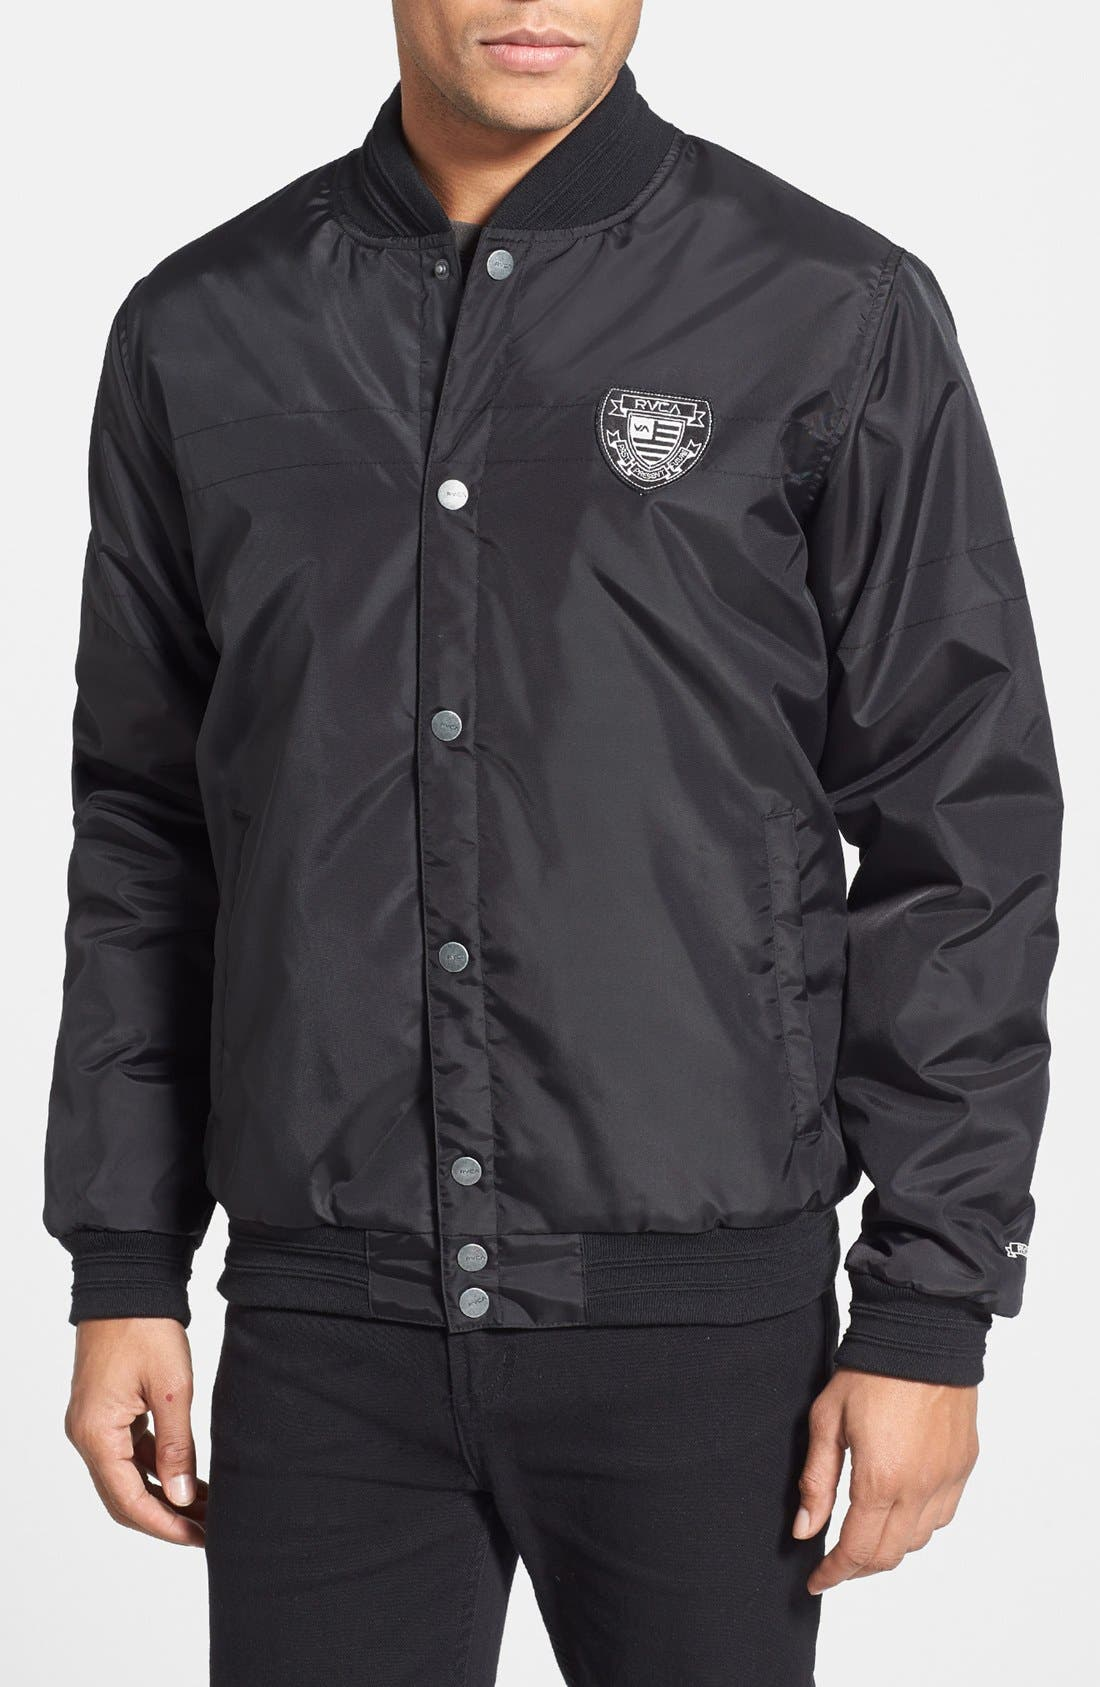 Alternate Image 1 Selected - RVCA 'Rally' Bomber Jacket